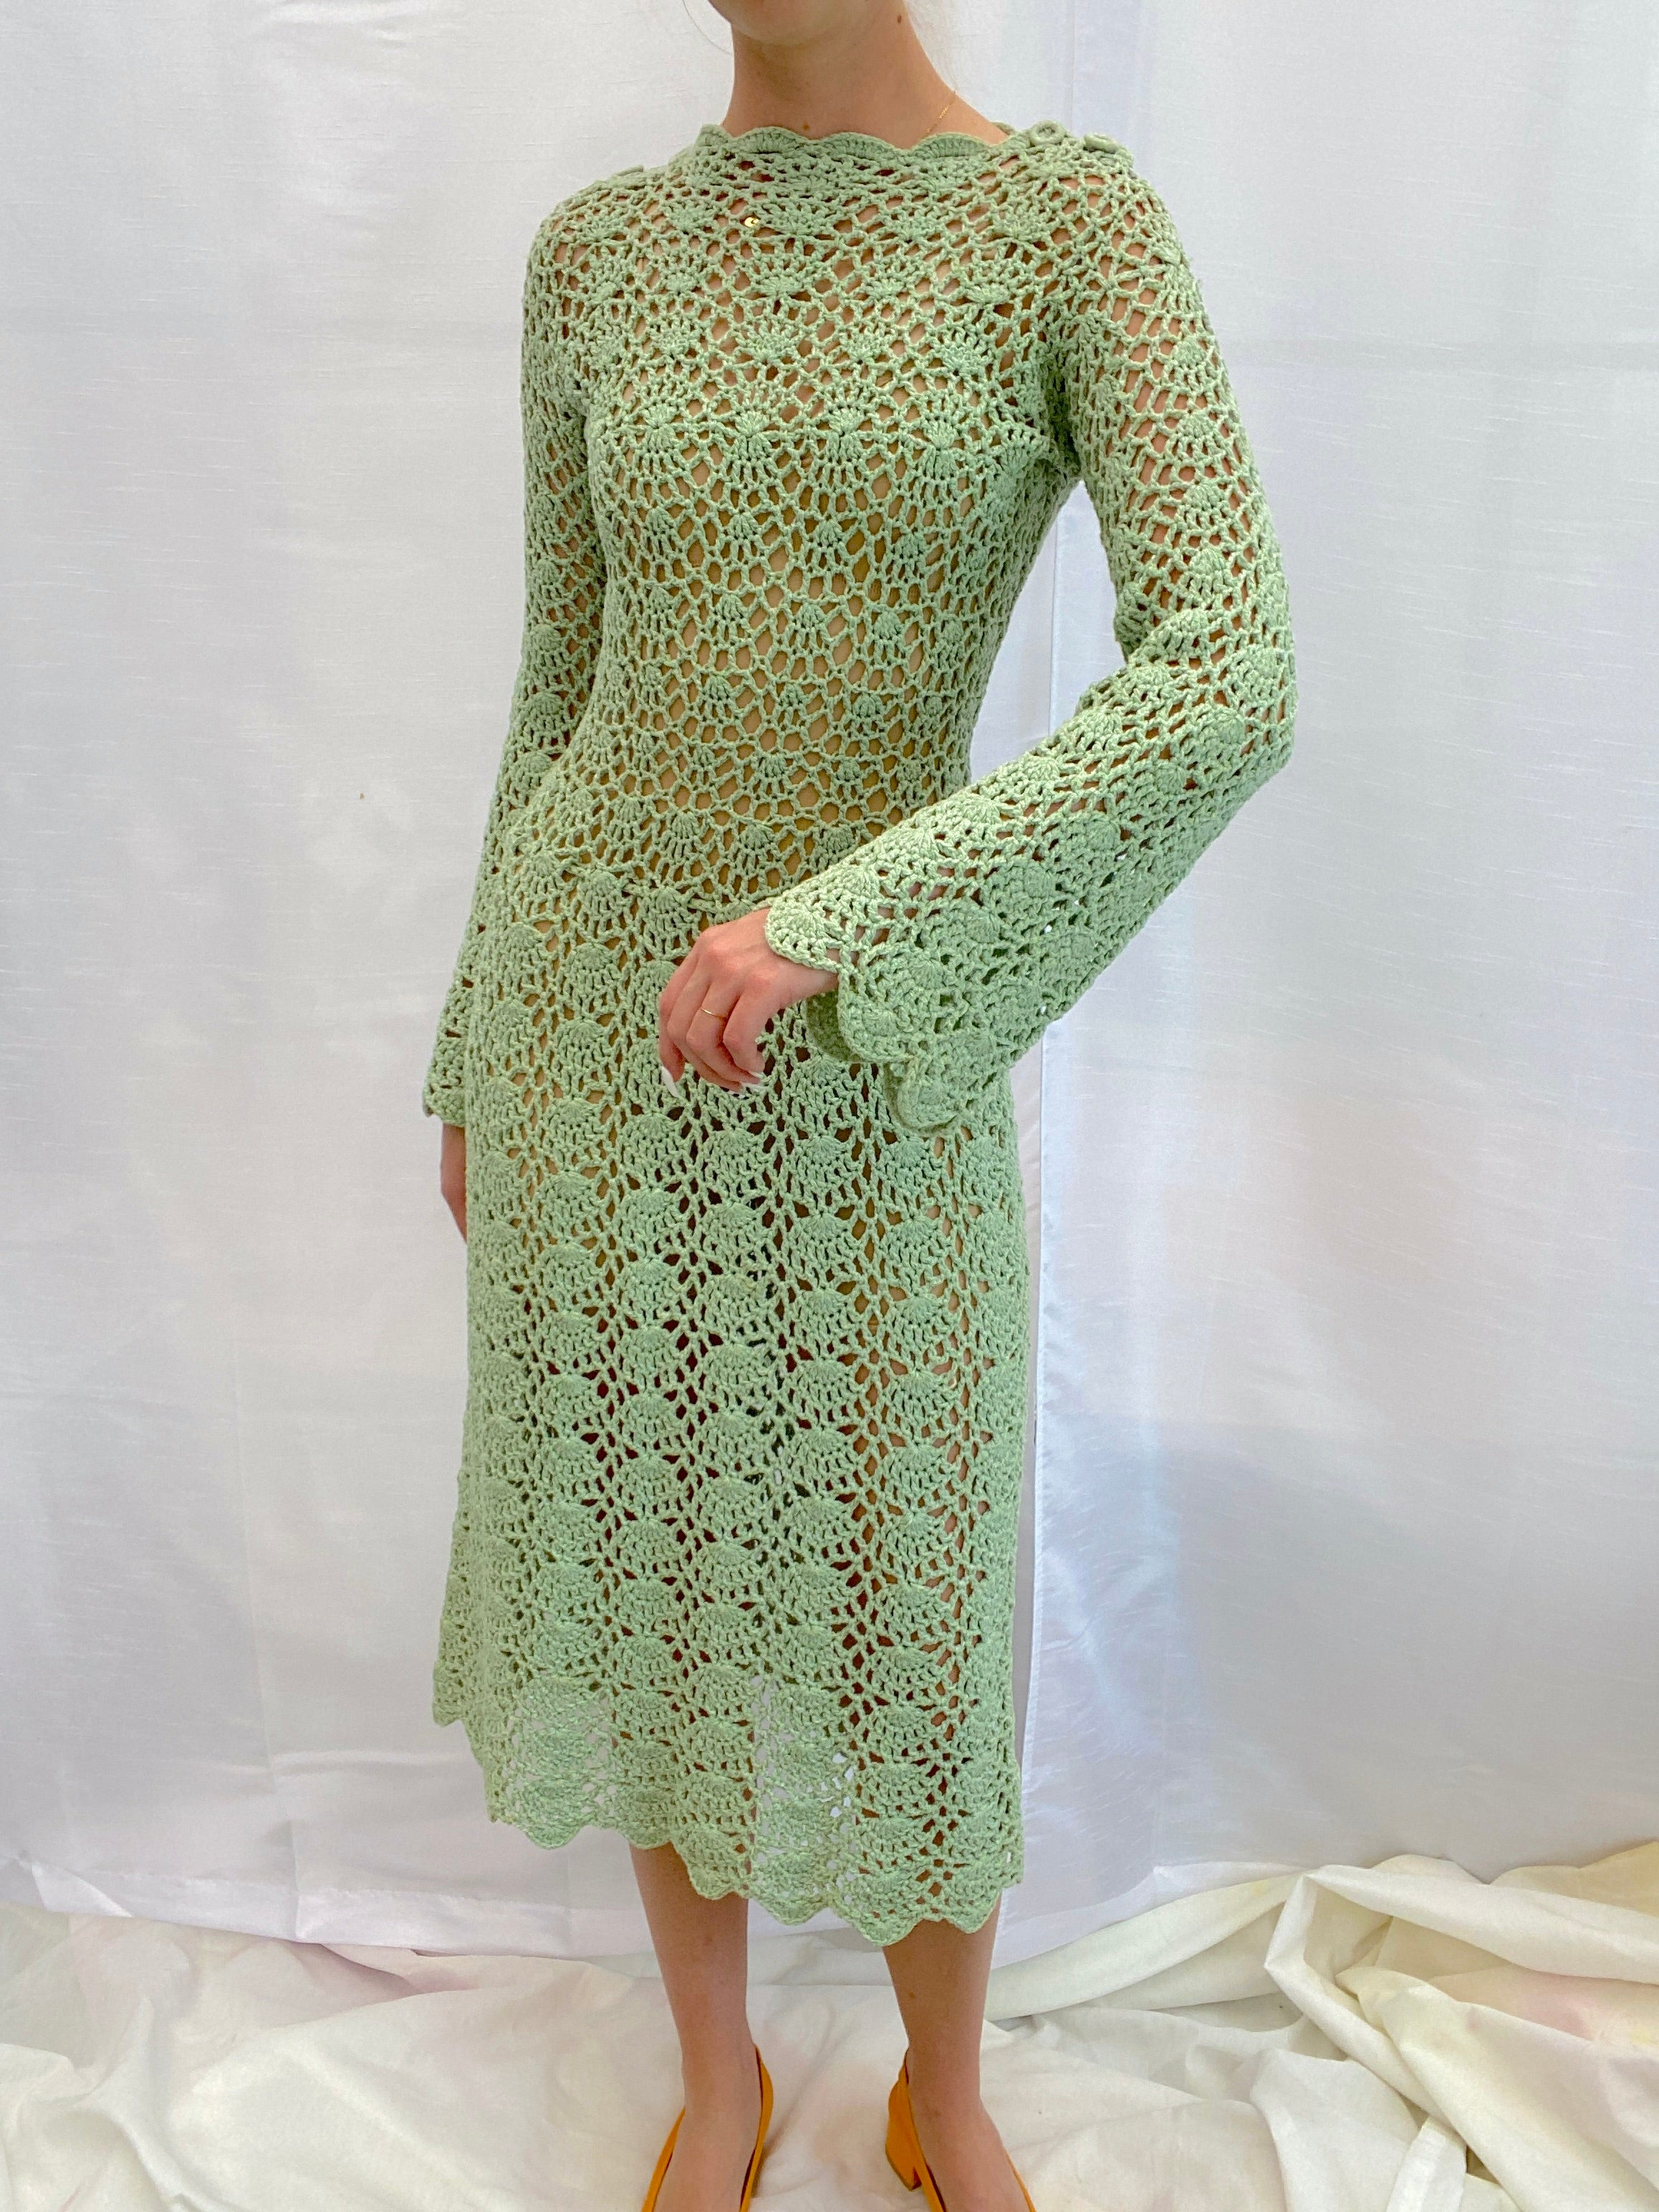 1970's Green Crochet Dress